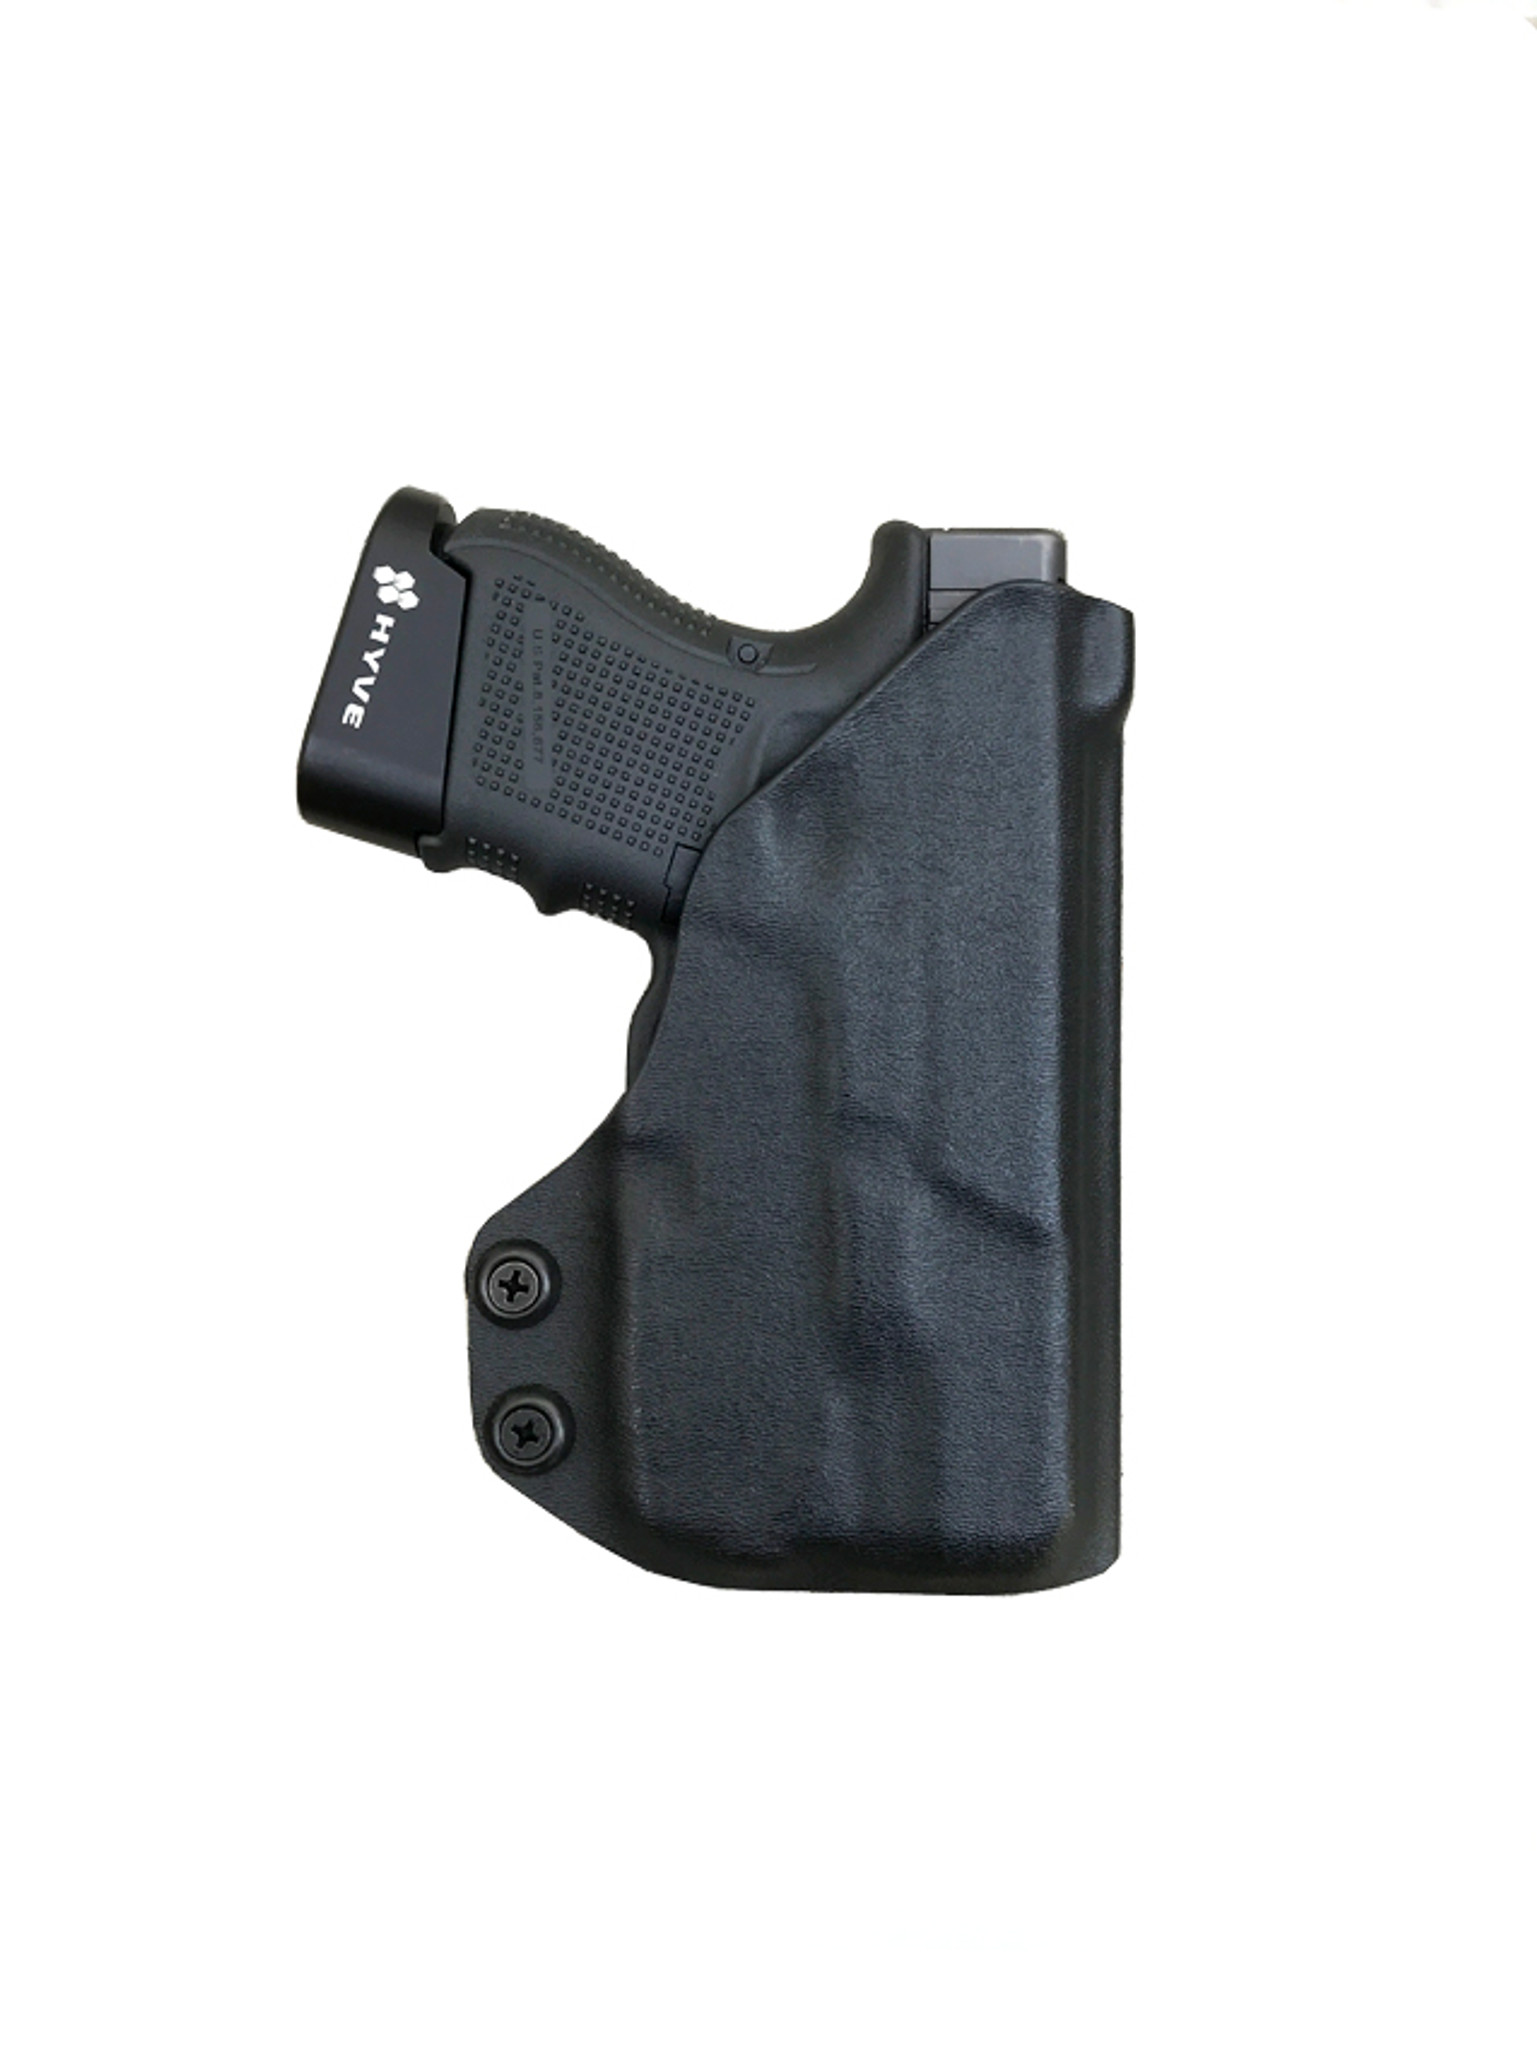 NEW: Ready to Ship Holsters